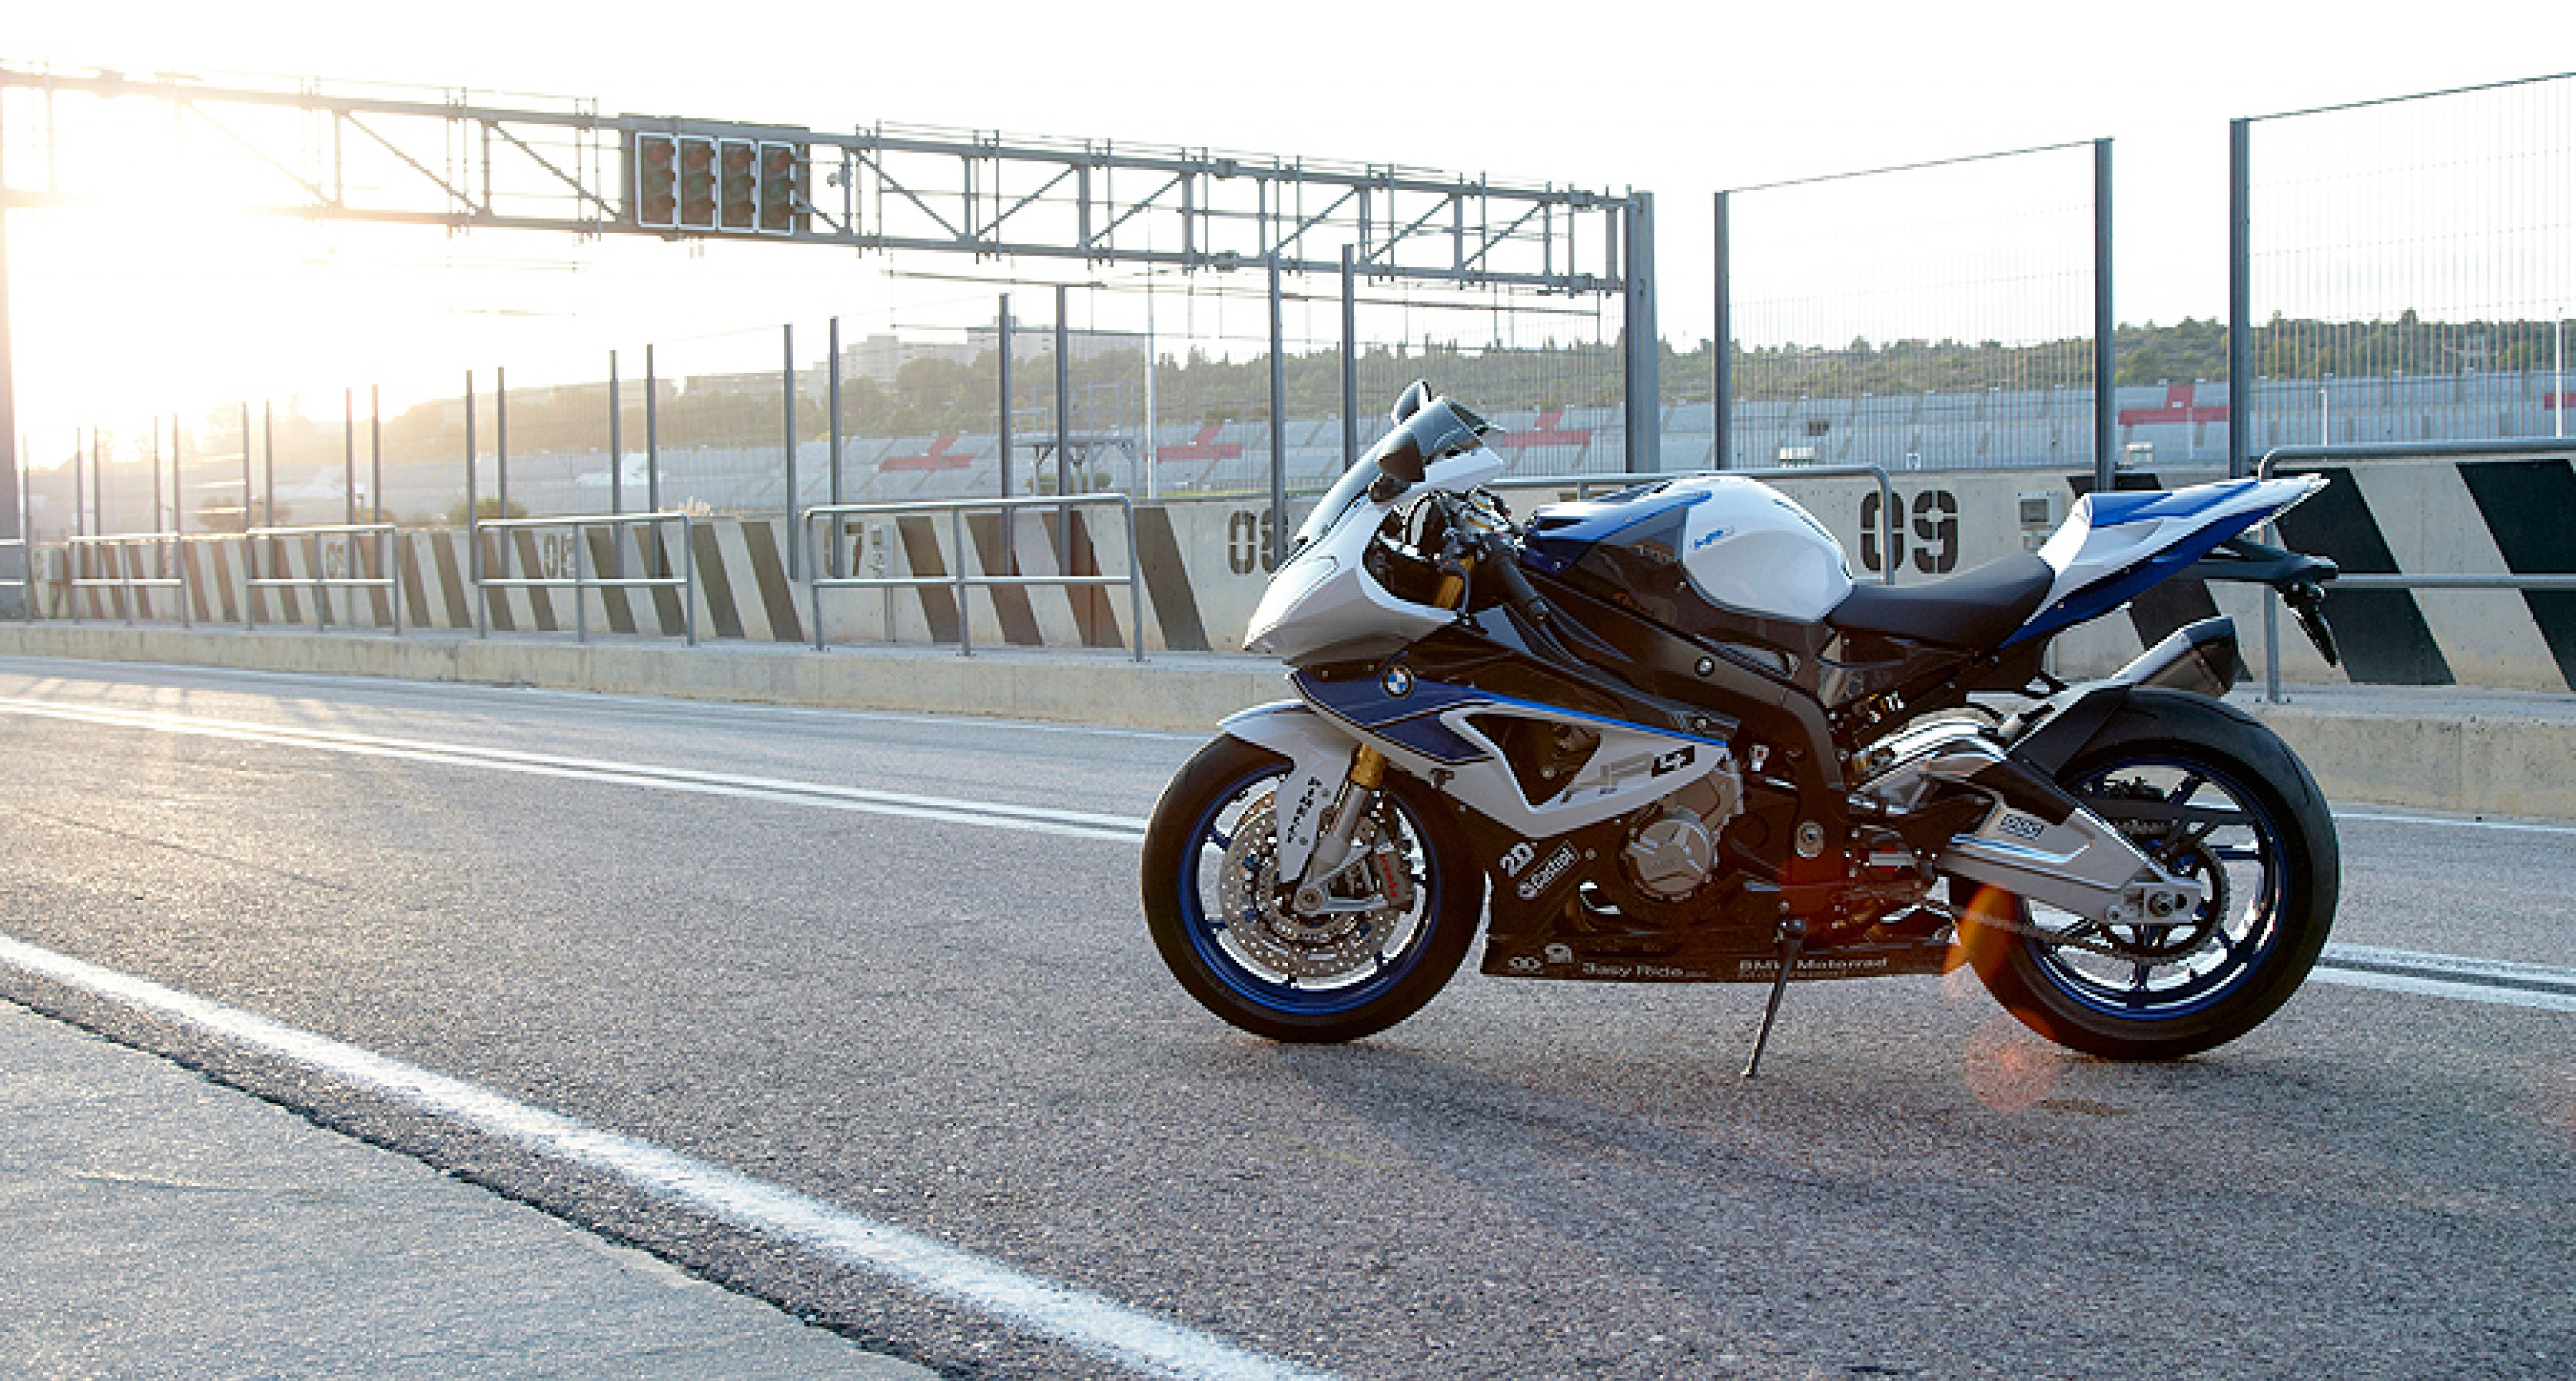 Five questions to Ola Stenegard, BMW motorcycle designer